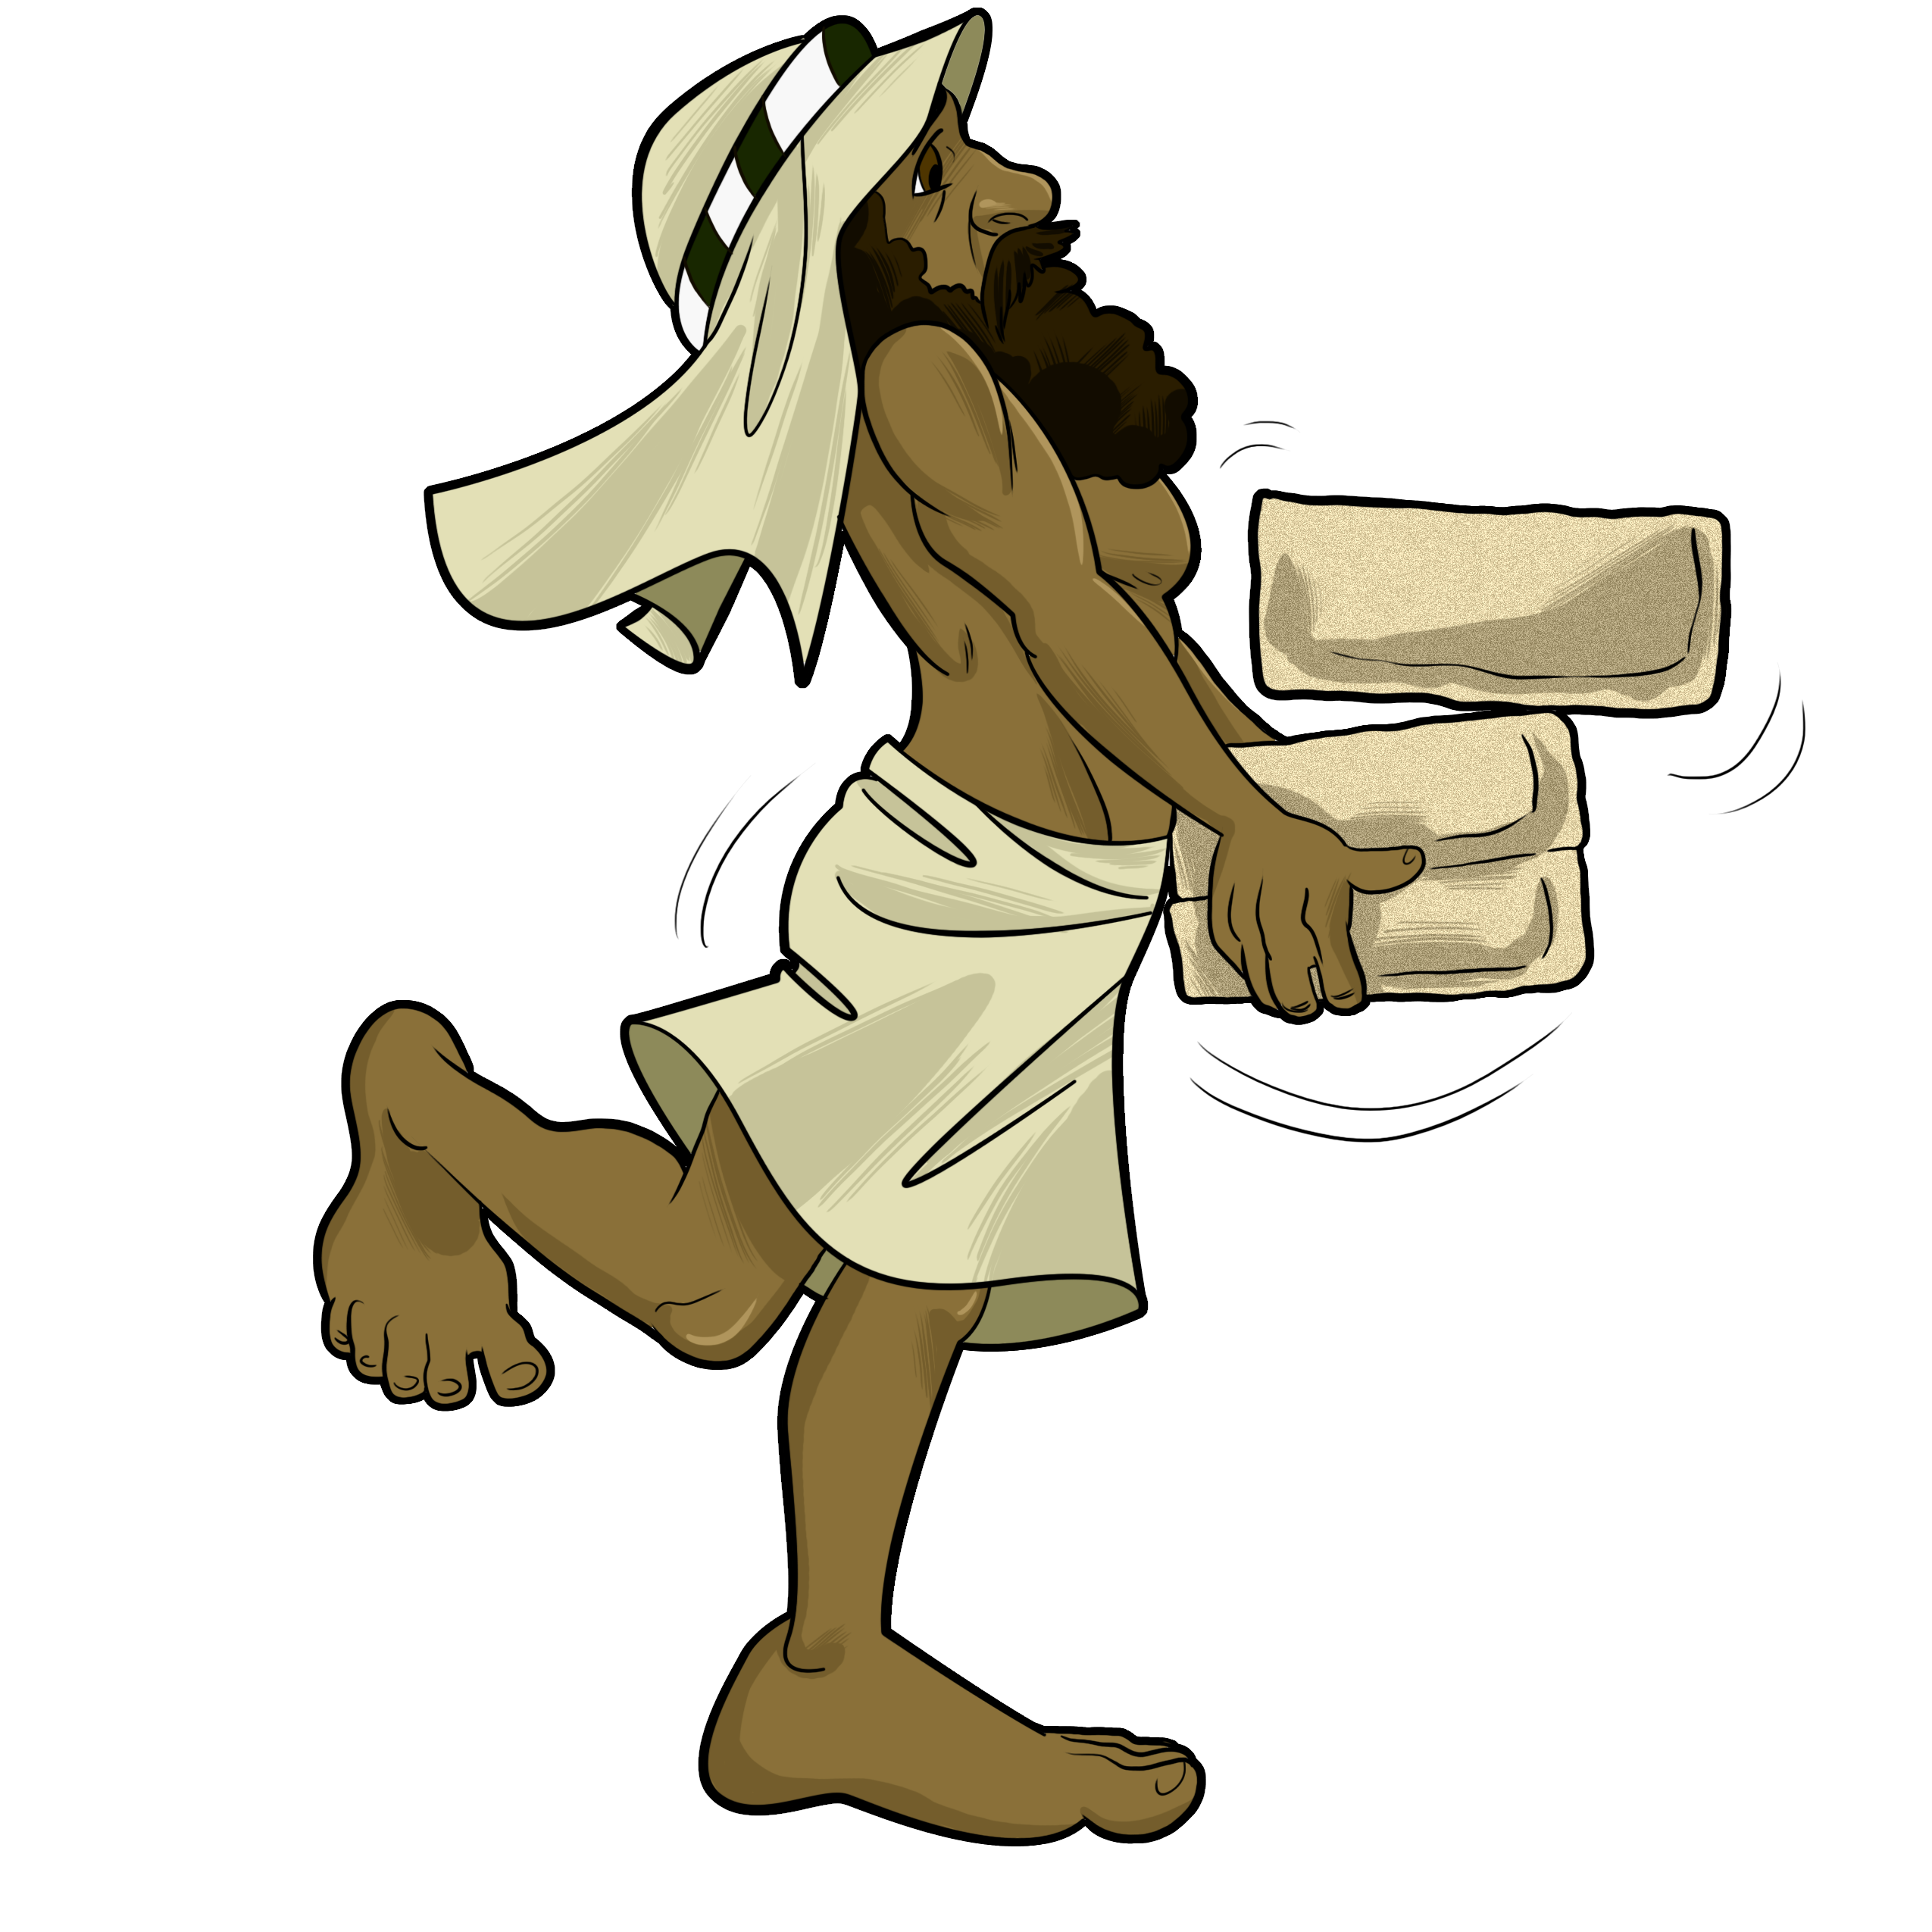 Planning clipart training plan. Hebrew slave in egypt